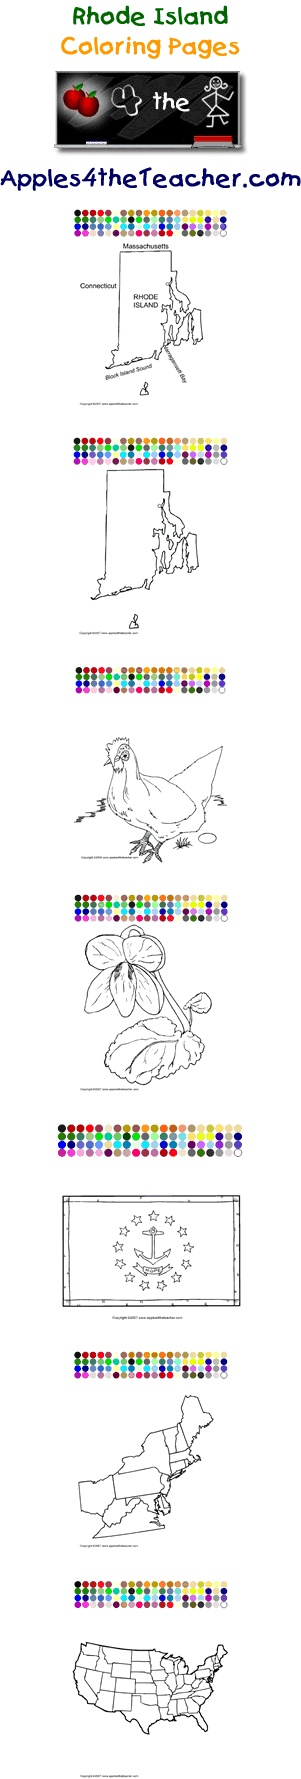 Printable interactive U.S. State coloring pages, Rhode Island coloring pages for kids  http://www.apples4theteacher.com/coloring-pages/usa/rhode-island/